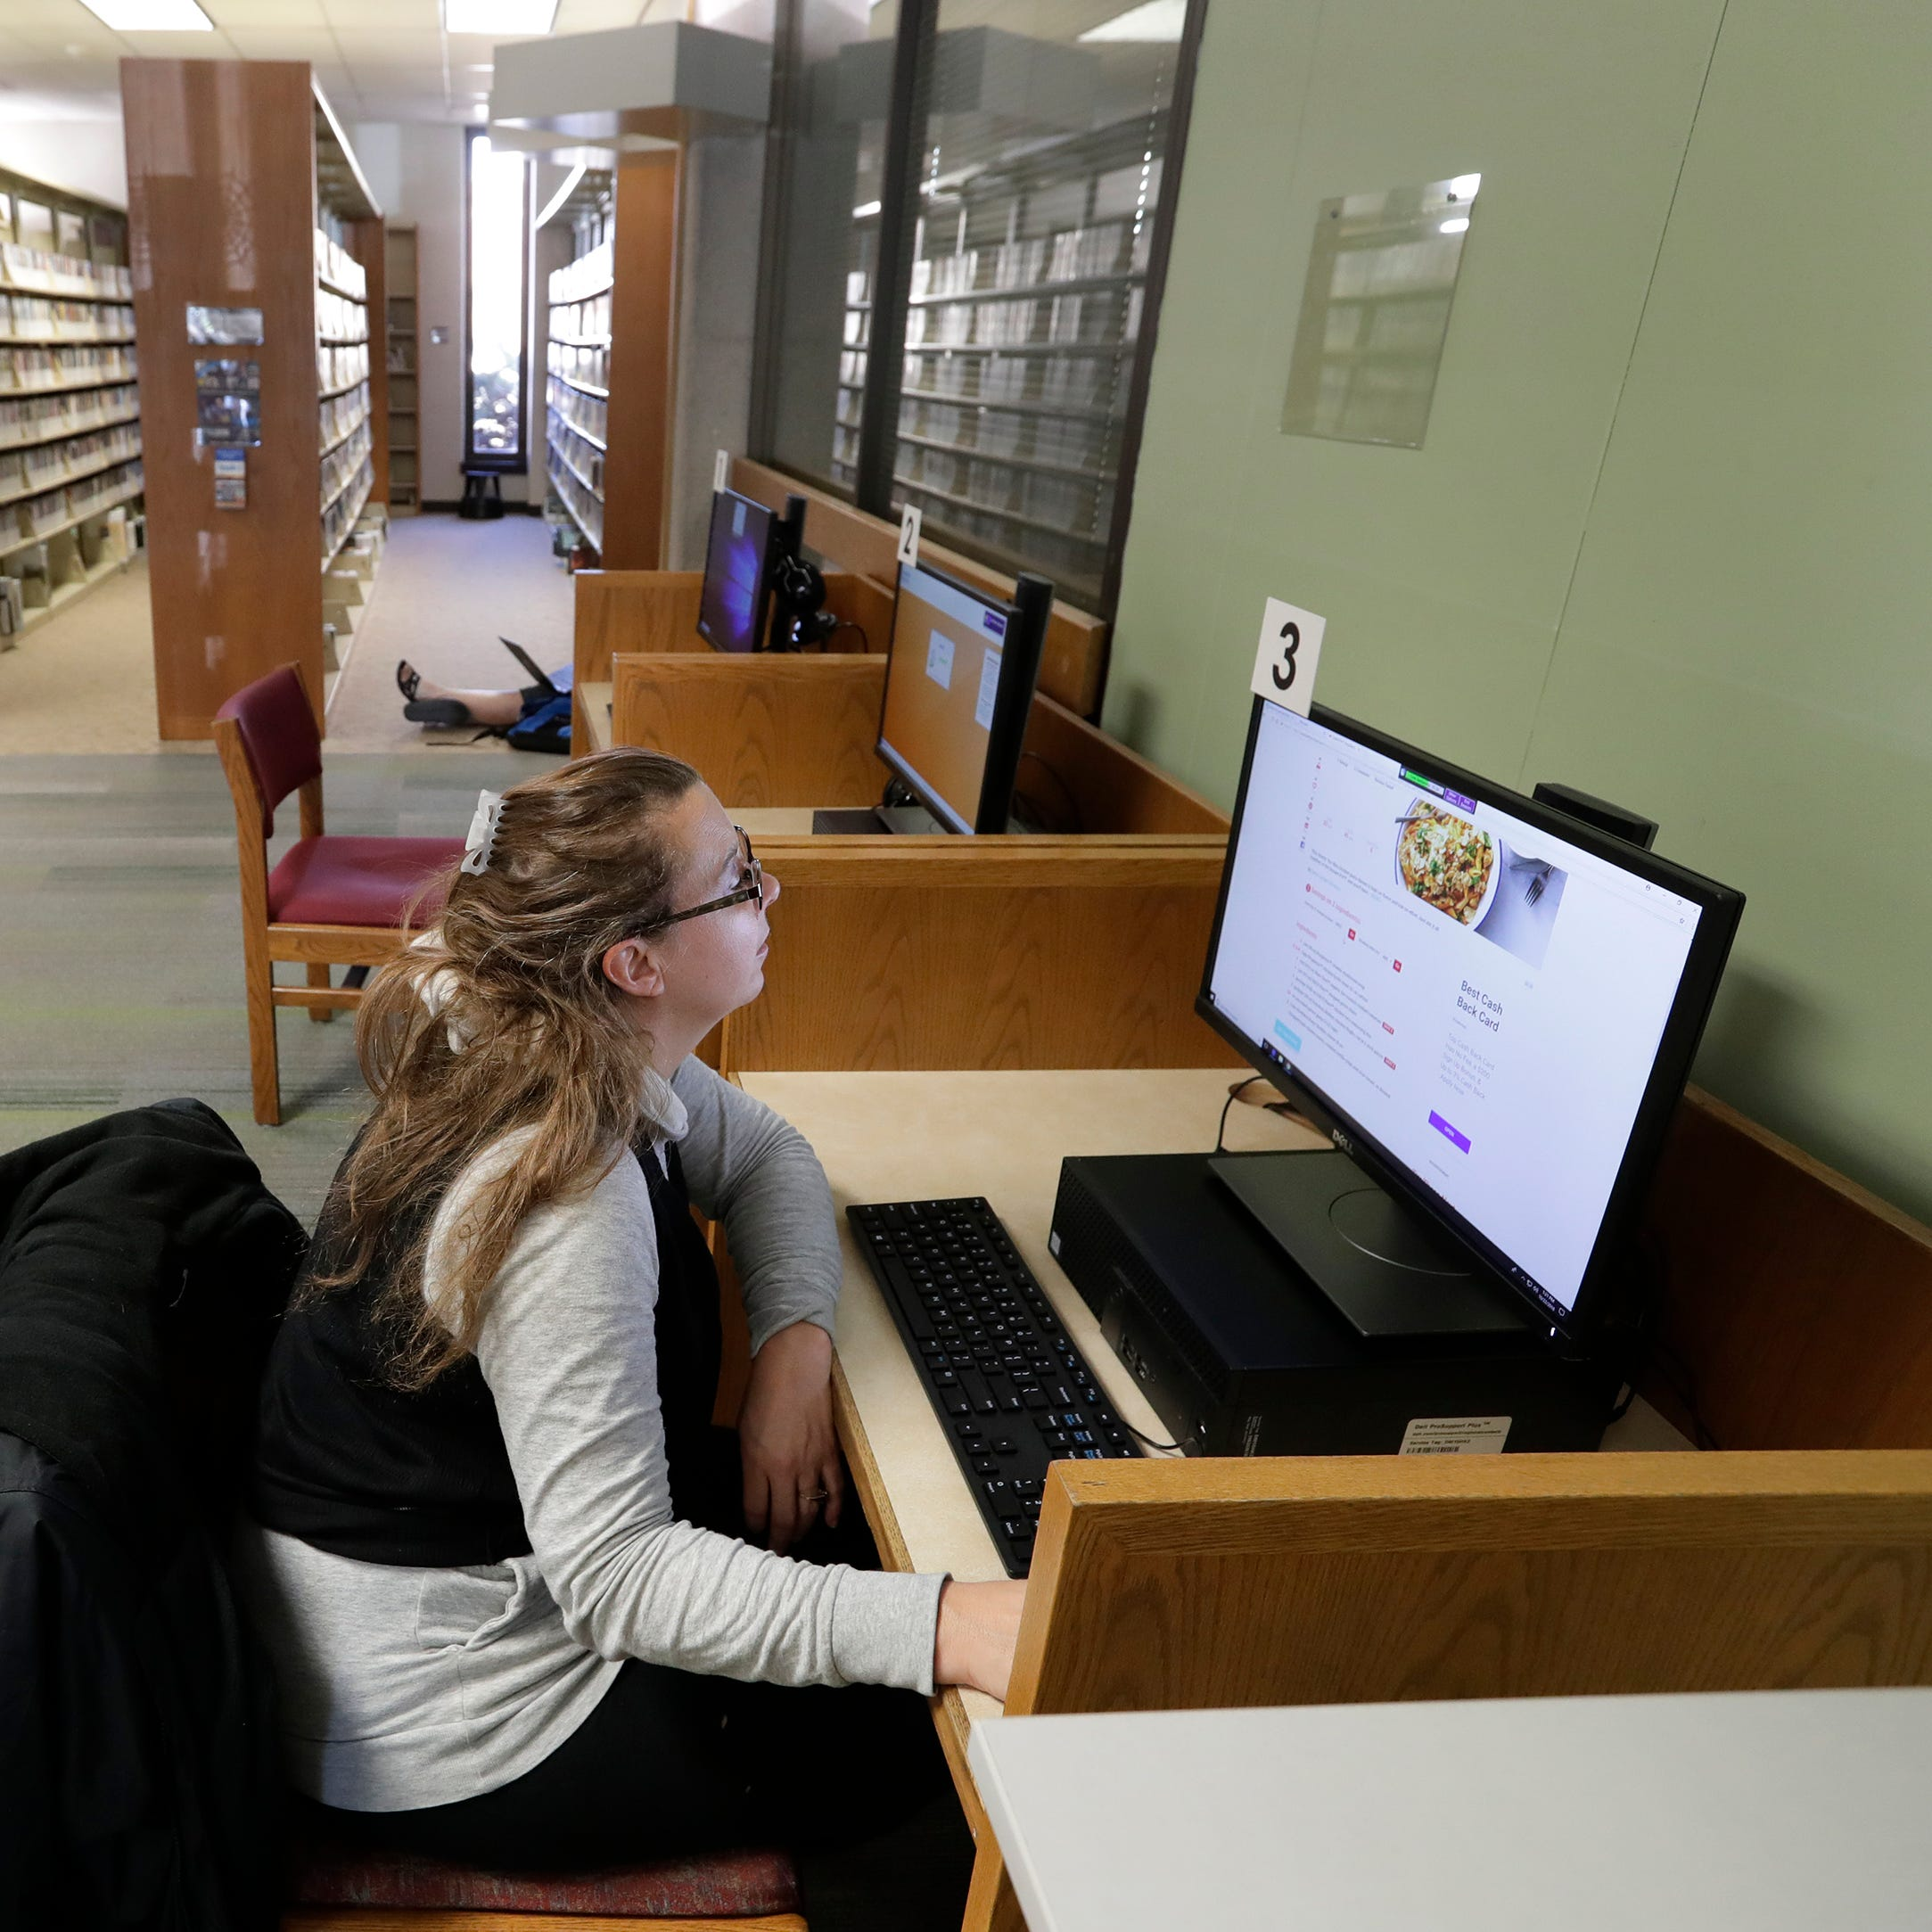 Technology and how it's used in modern libraries is part of Appleton library debate